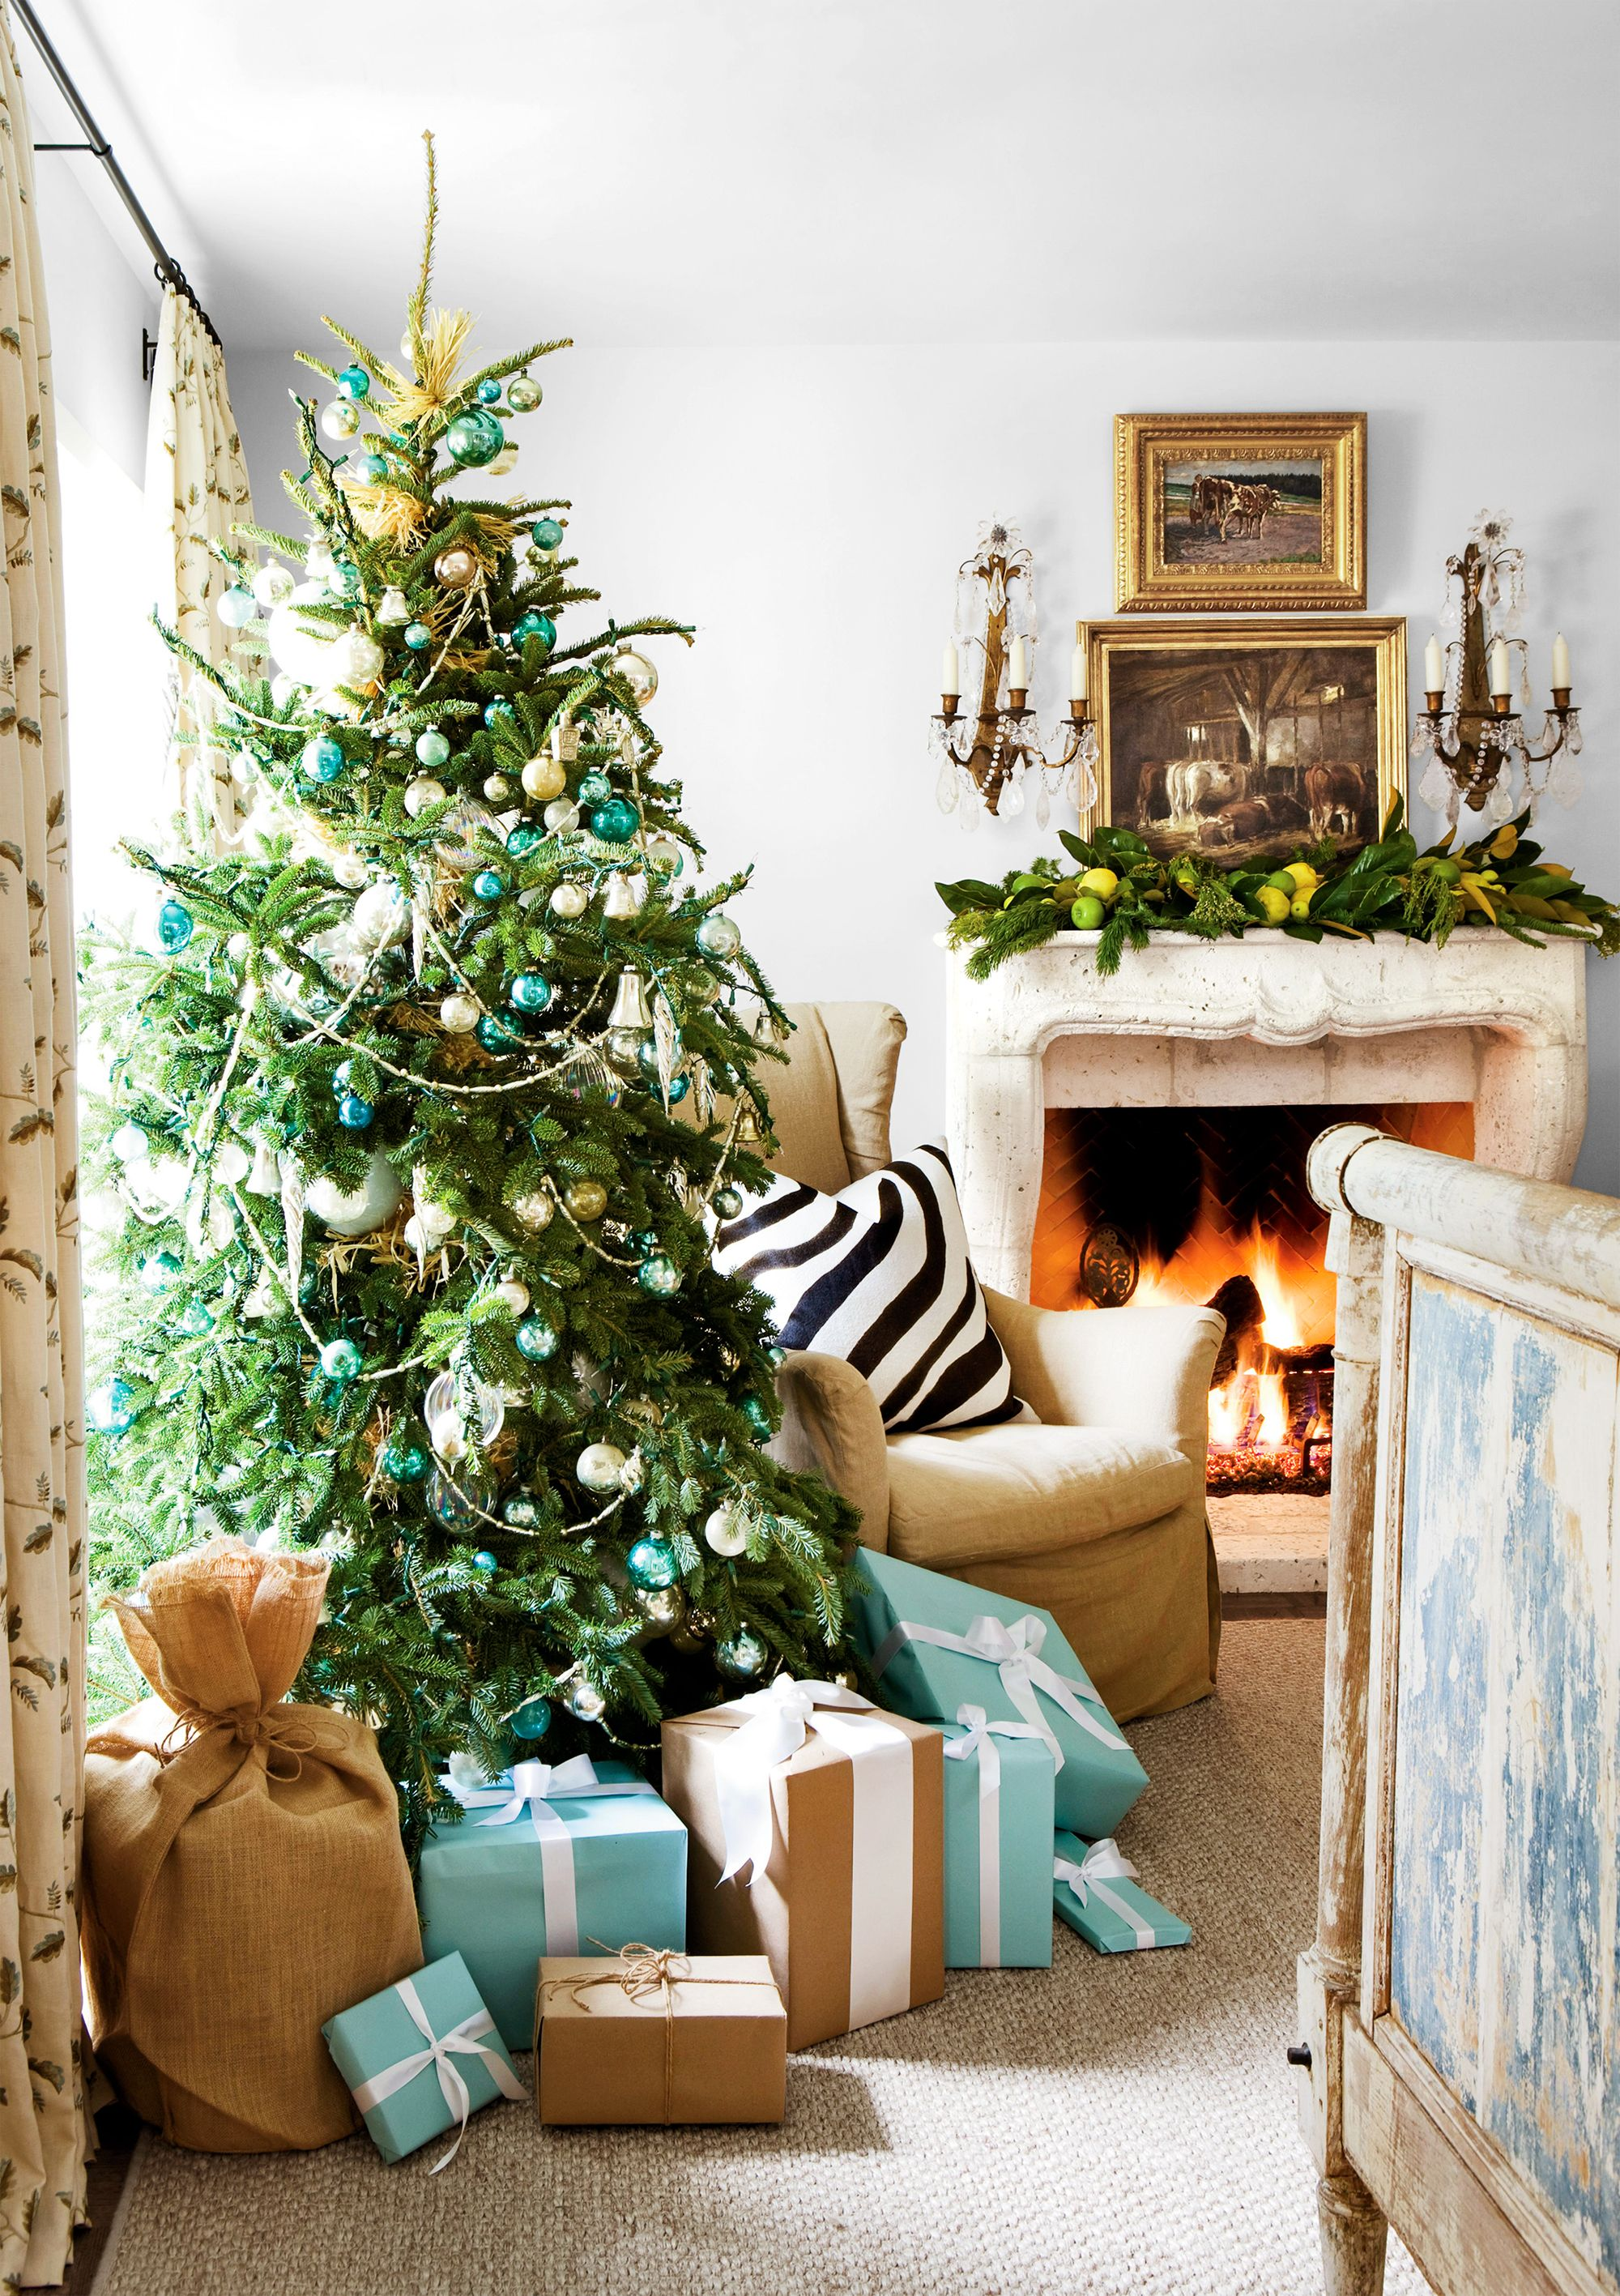 Home Design And Deko Shopping 105 Christmas Home Decorating Ideas - Beautiful Christmas Decorations